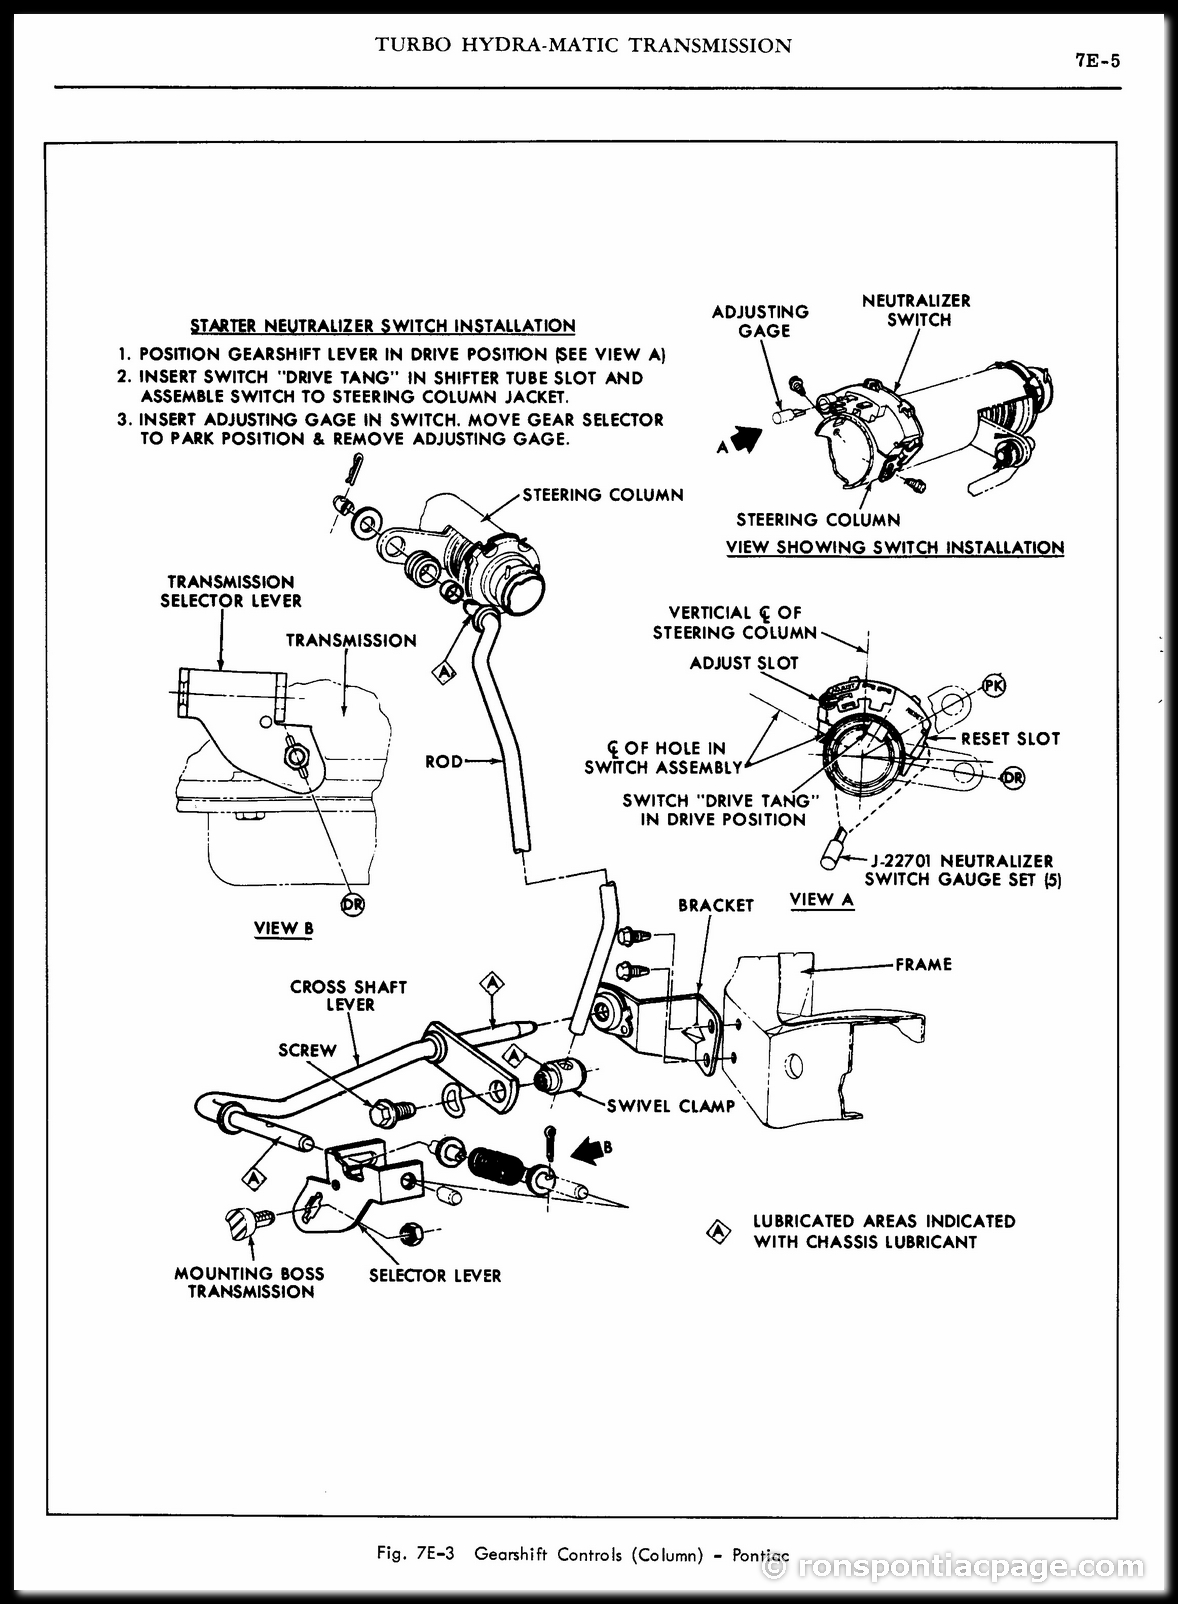 Section 7E: Turbo Hydra-Matic Automatic Transmission (5 of 65)